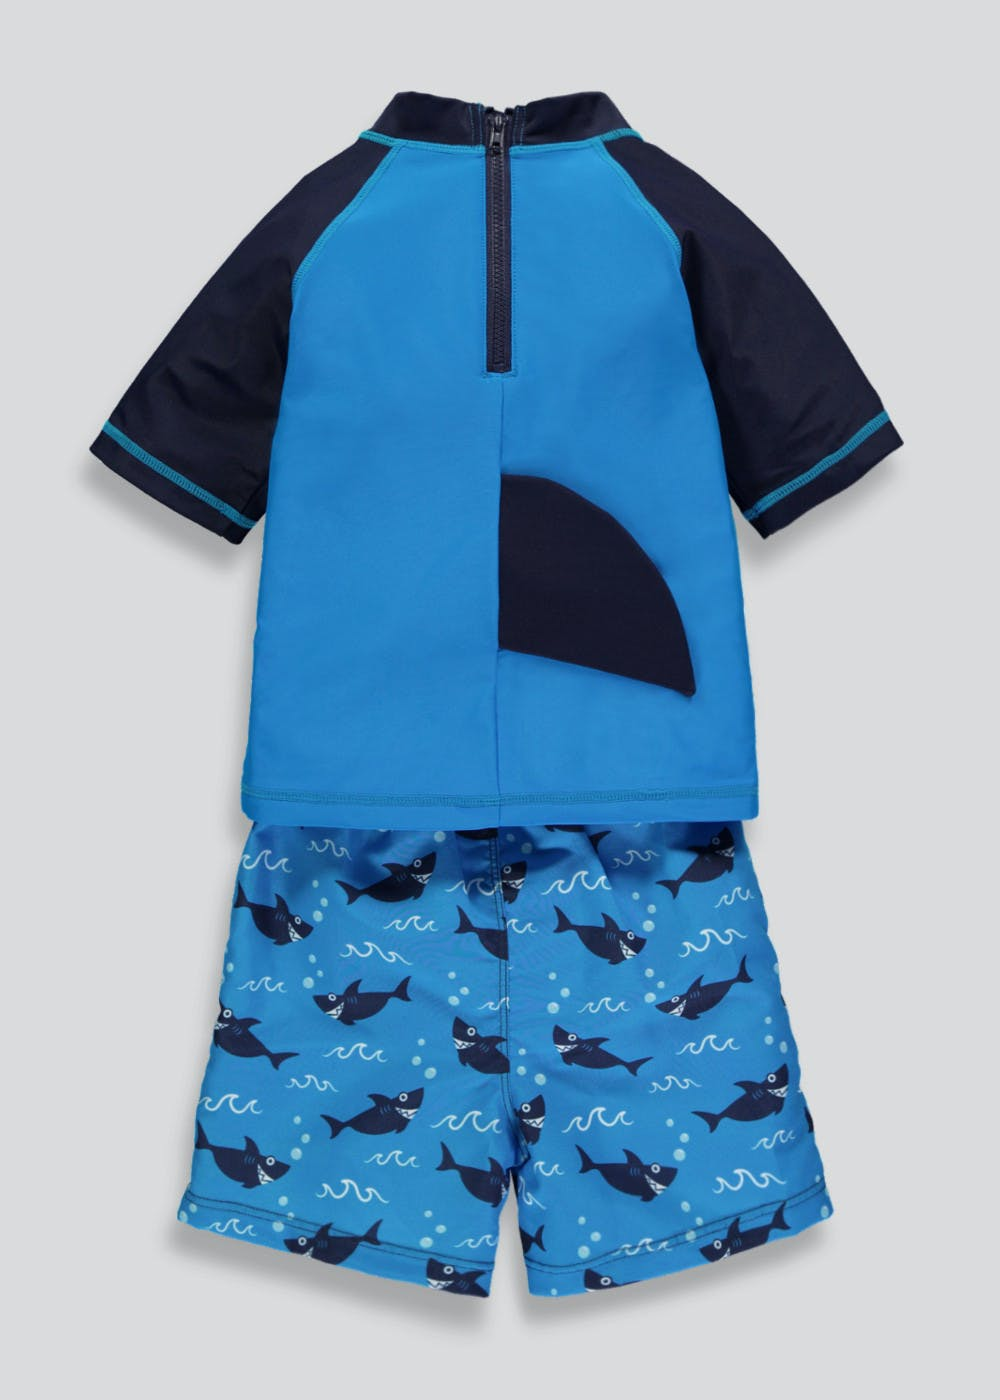 Boys Swimming - Swim Shorts, Swimsuits, Towels & Accessories – Matalan